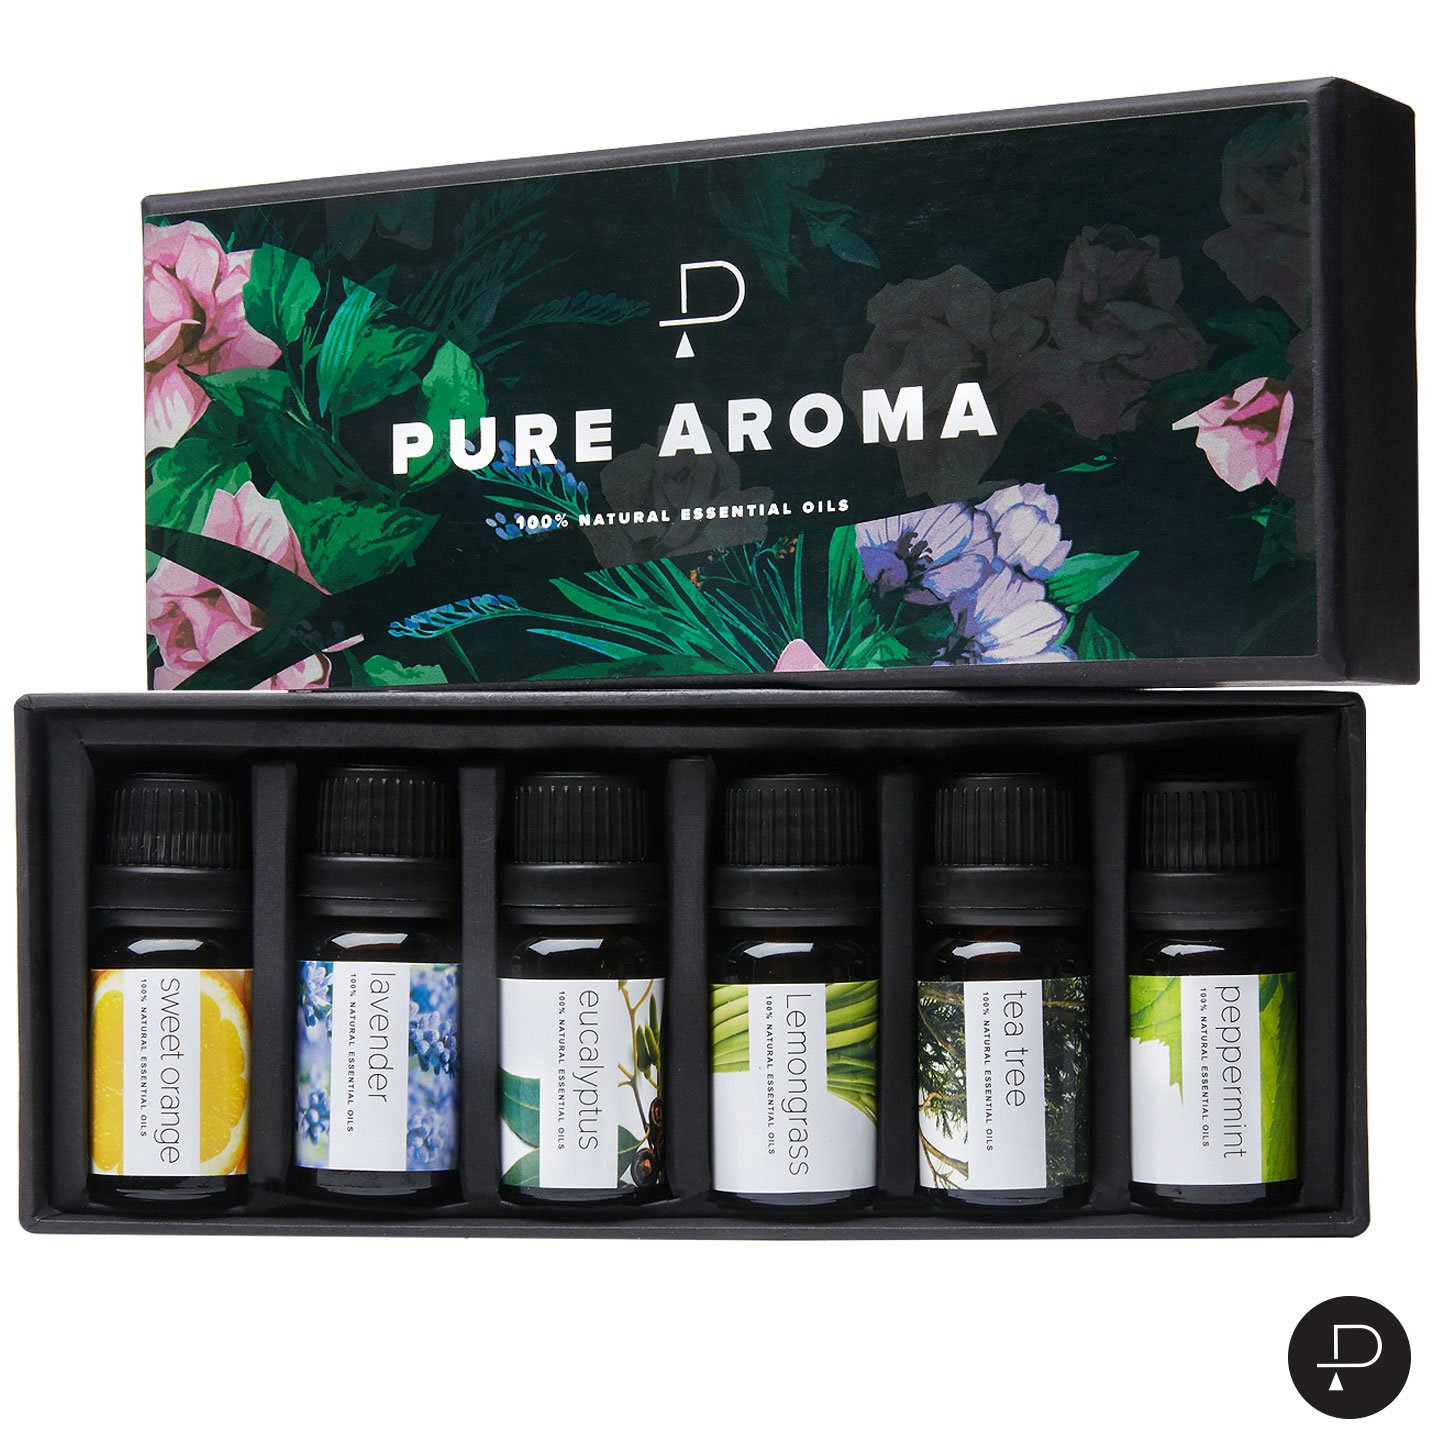 Review of Aromatherapy Oils Gift Set - 6 Pack 10ml Essential Oils by PURE AROMA